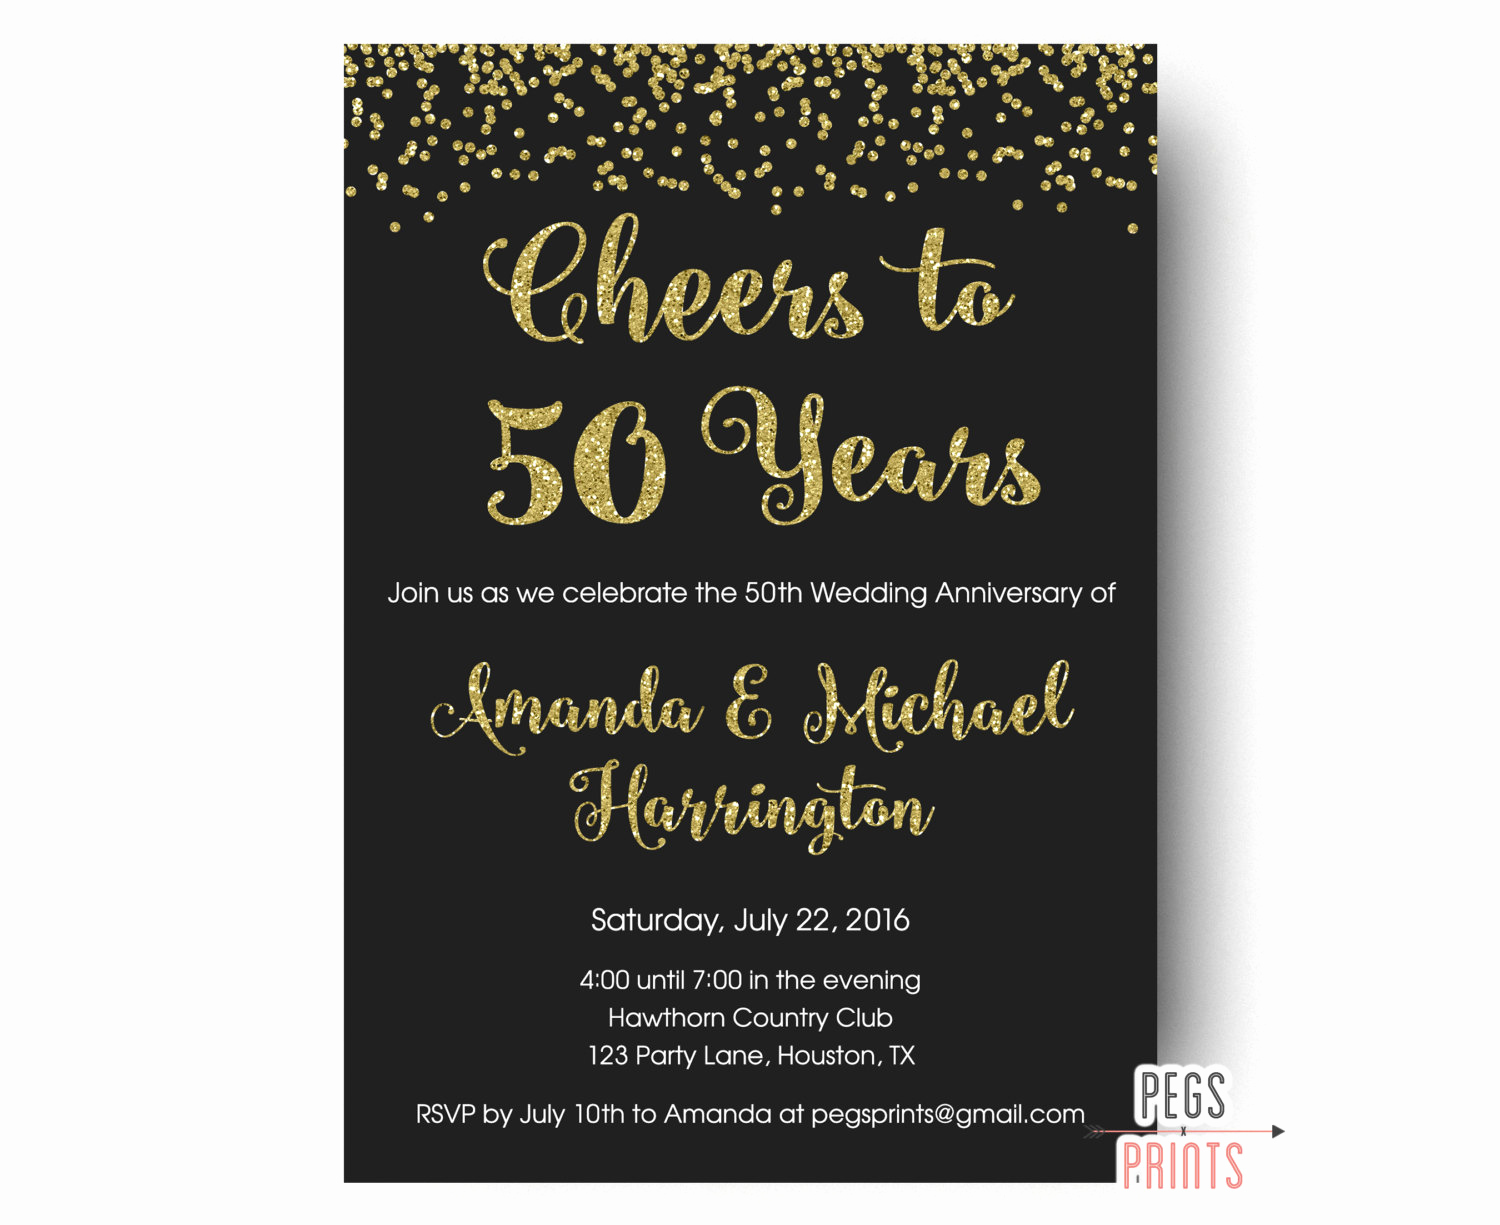 50th Anniversary Invitation Wording Beautiful Cheers to 50 Years Invitation 50th Anniversary Invitation